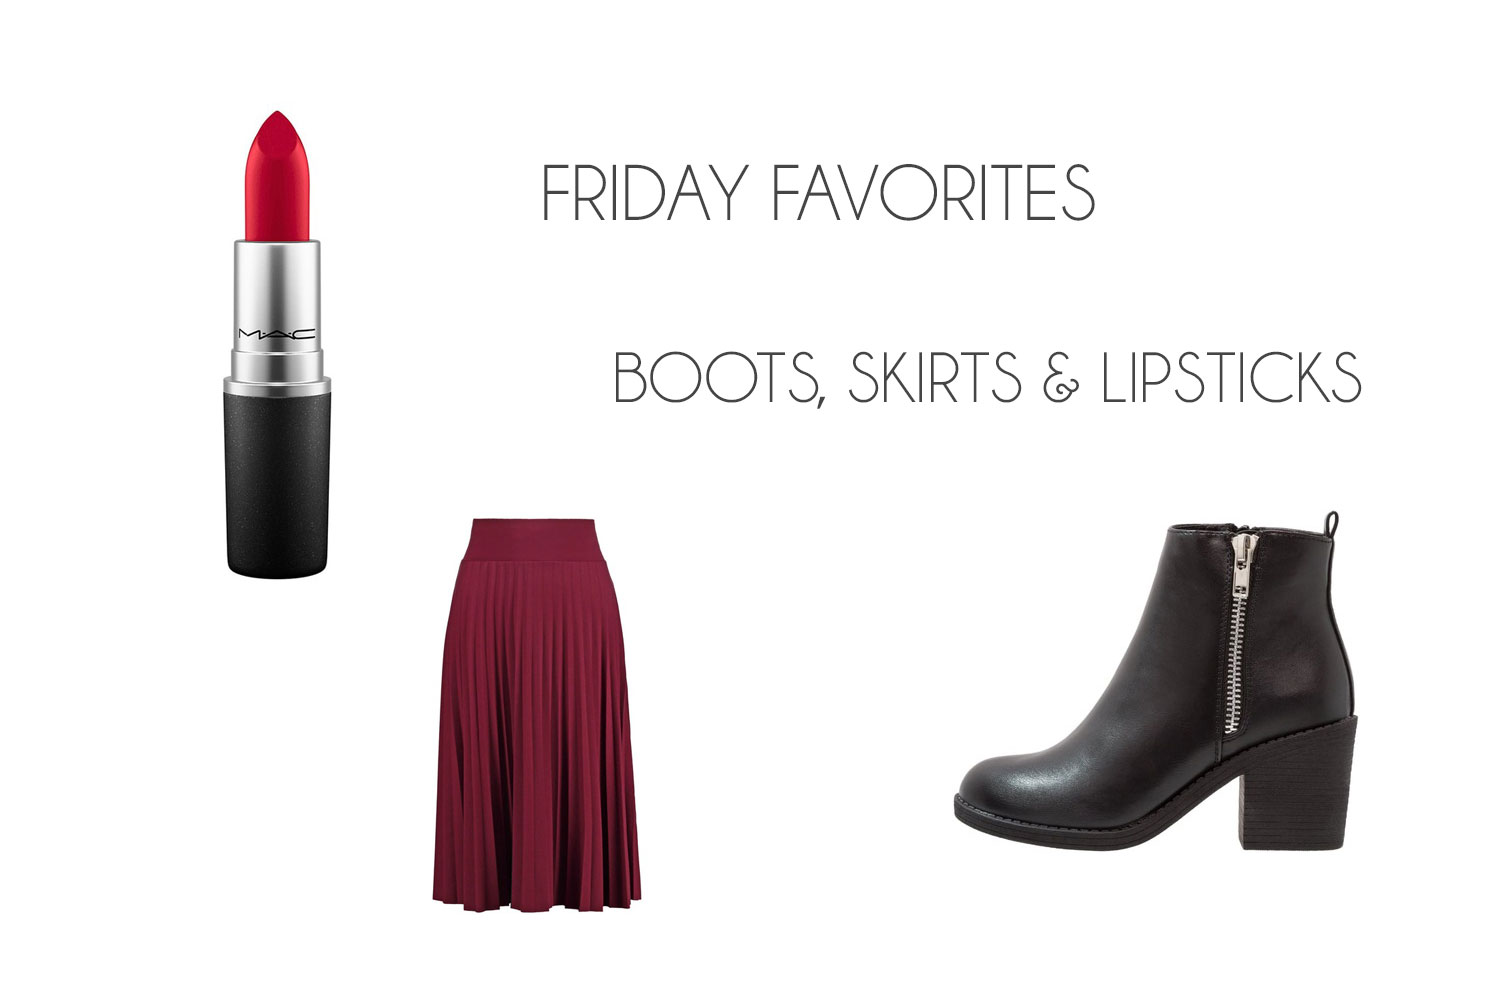 Friday Favorites | Boots, Skirts & Lipsticks